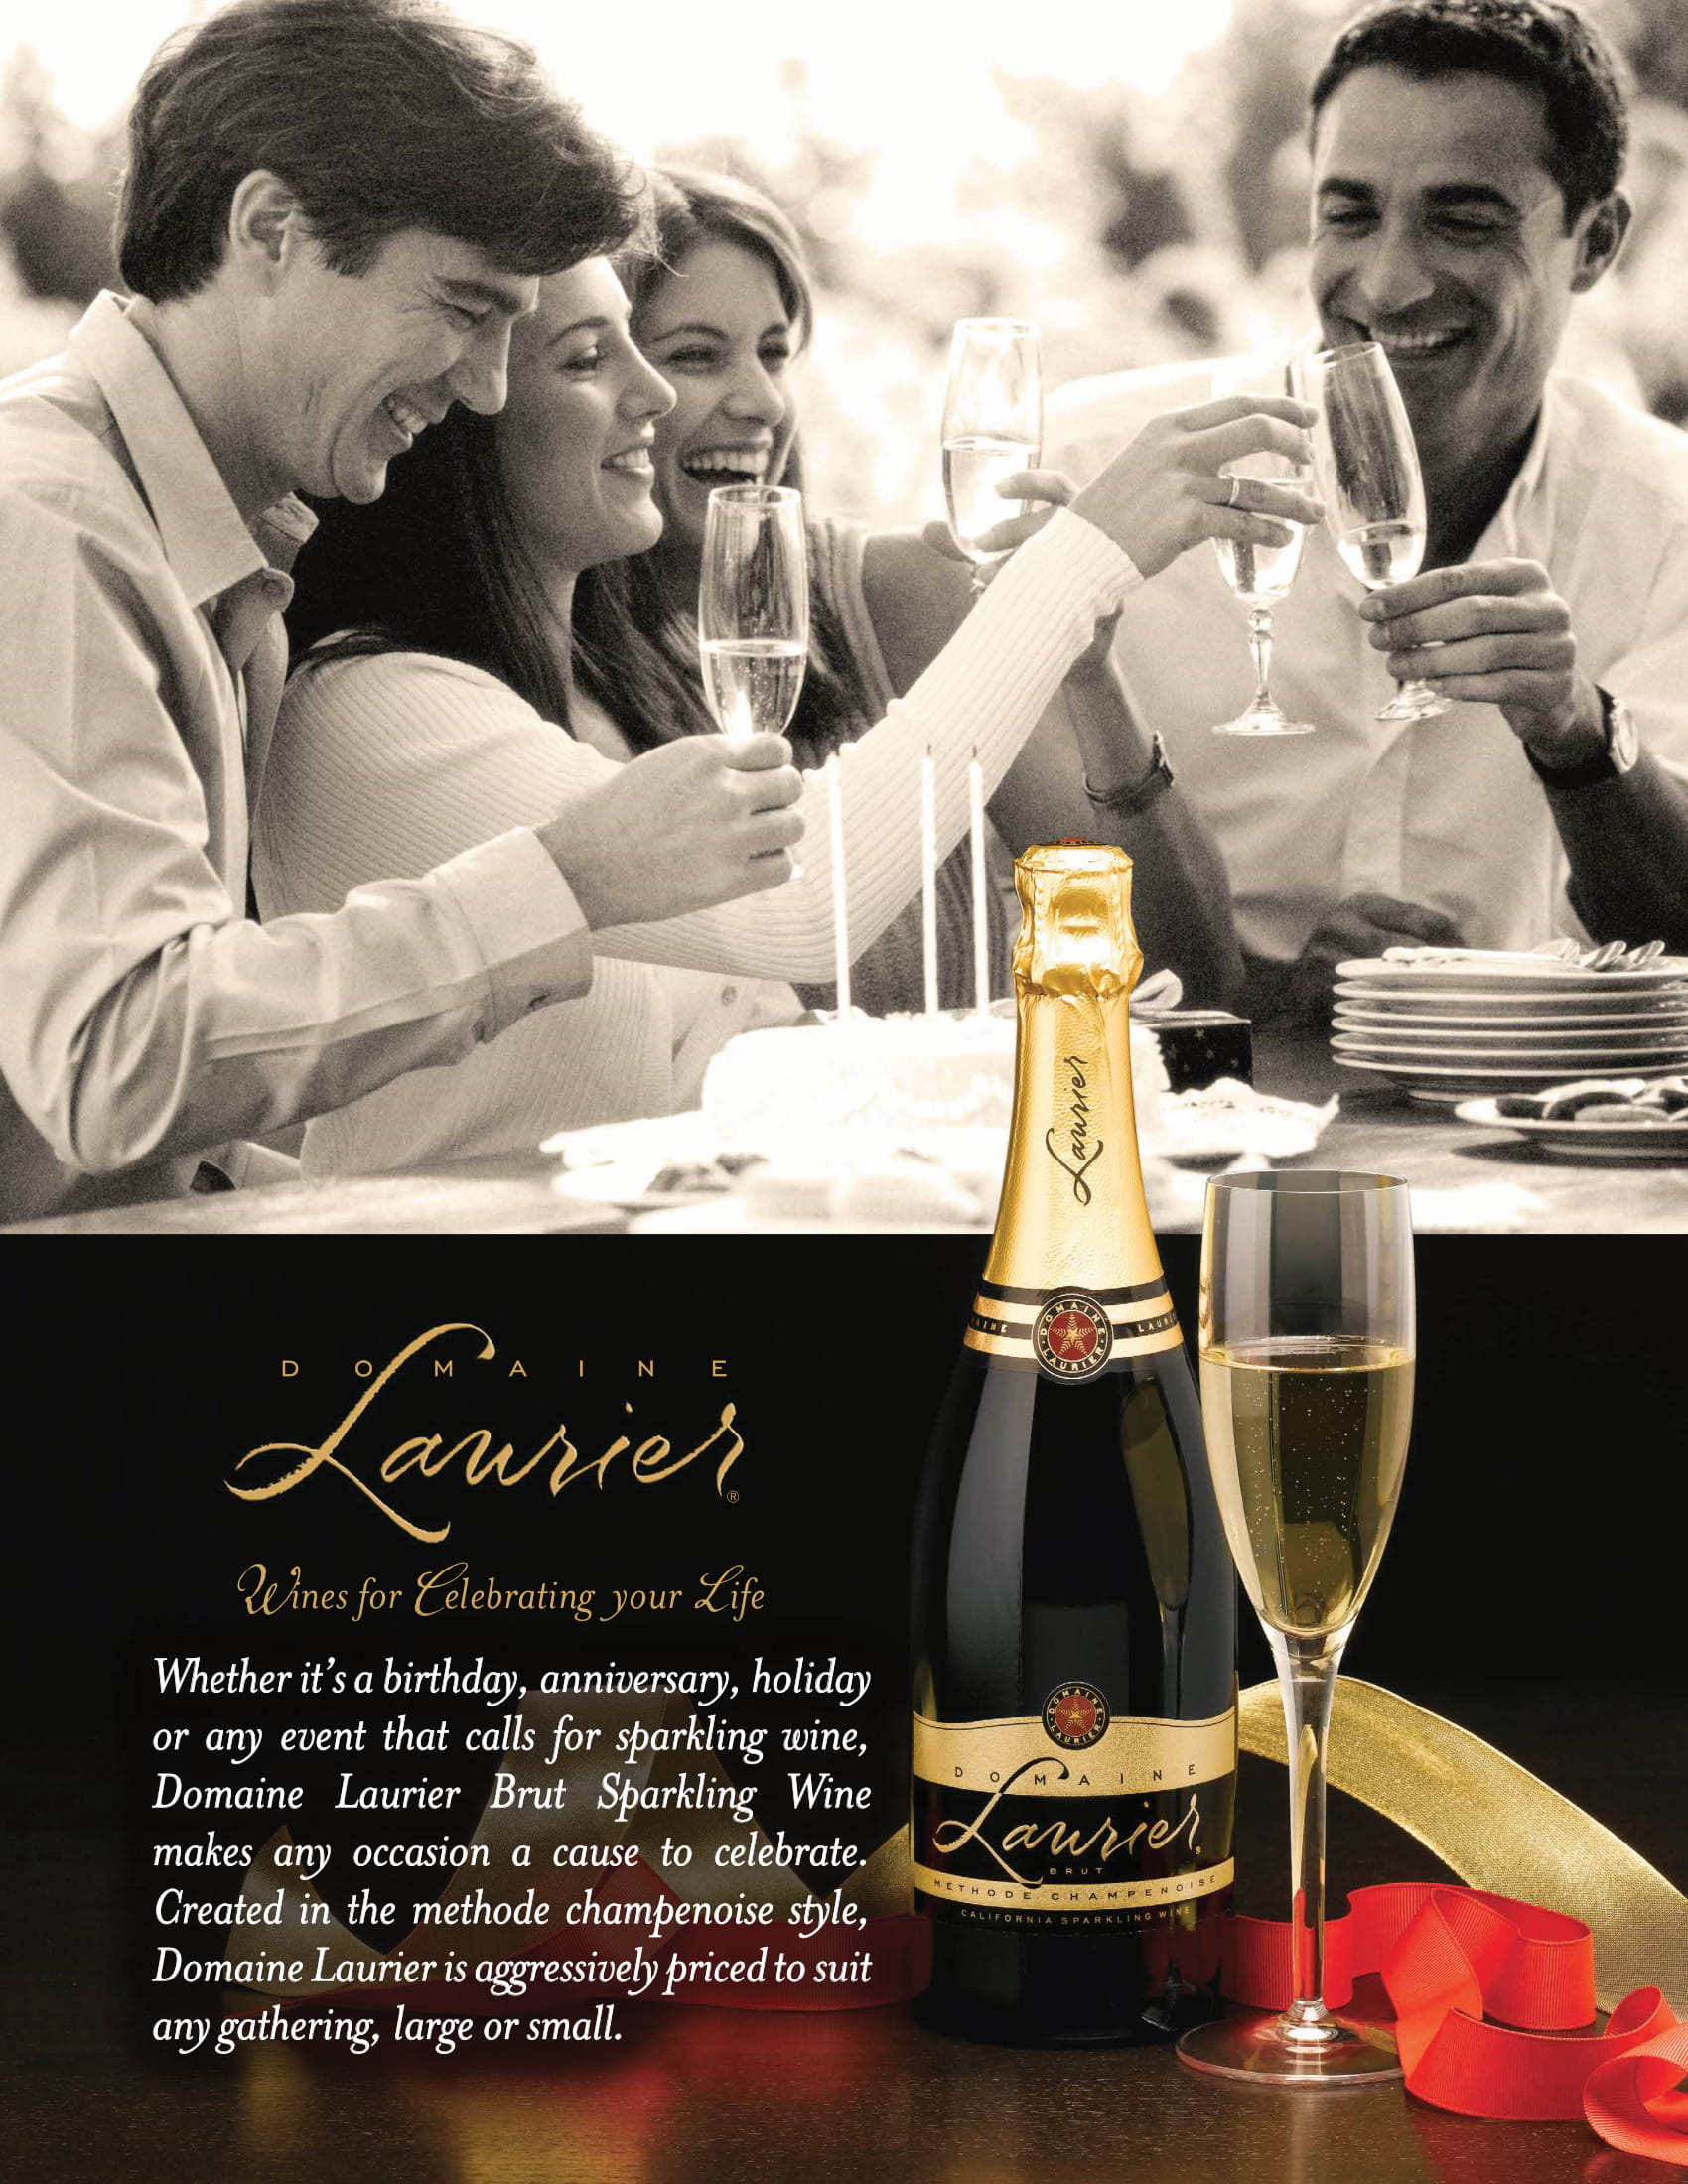 Domaine Laurier Sparkling Wines Family Sell Sheet